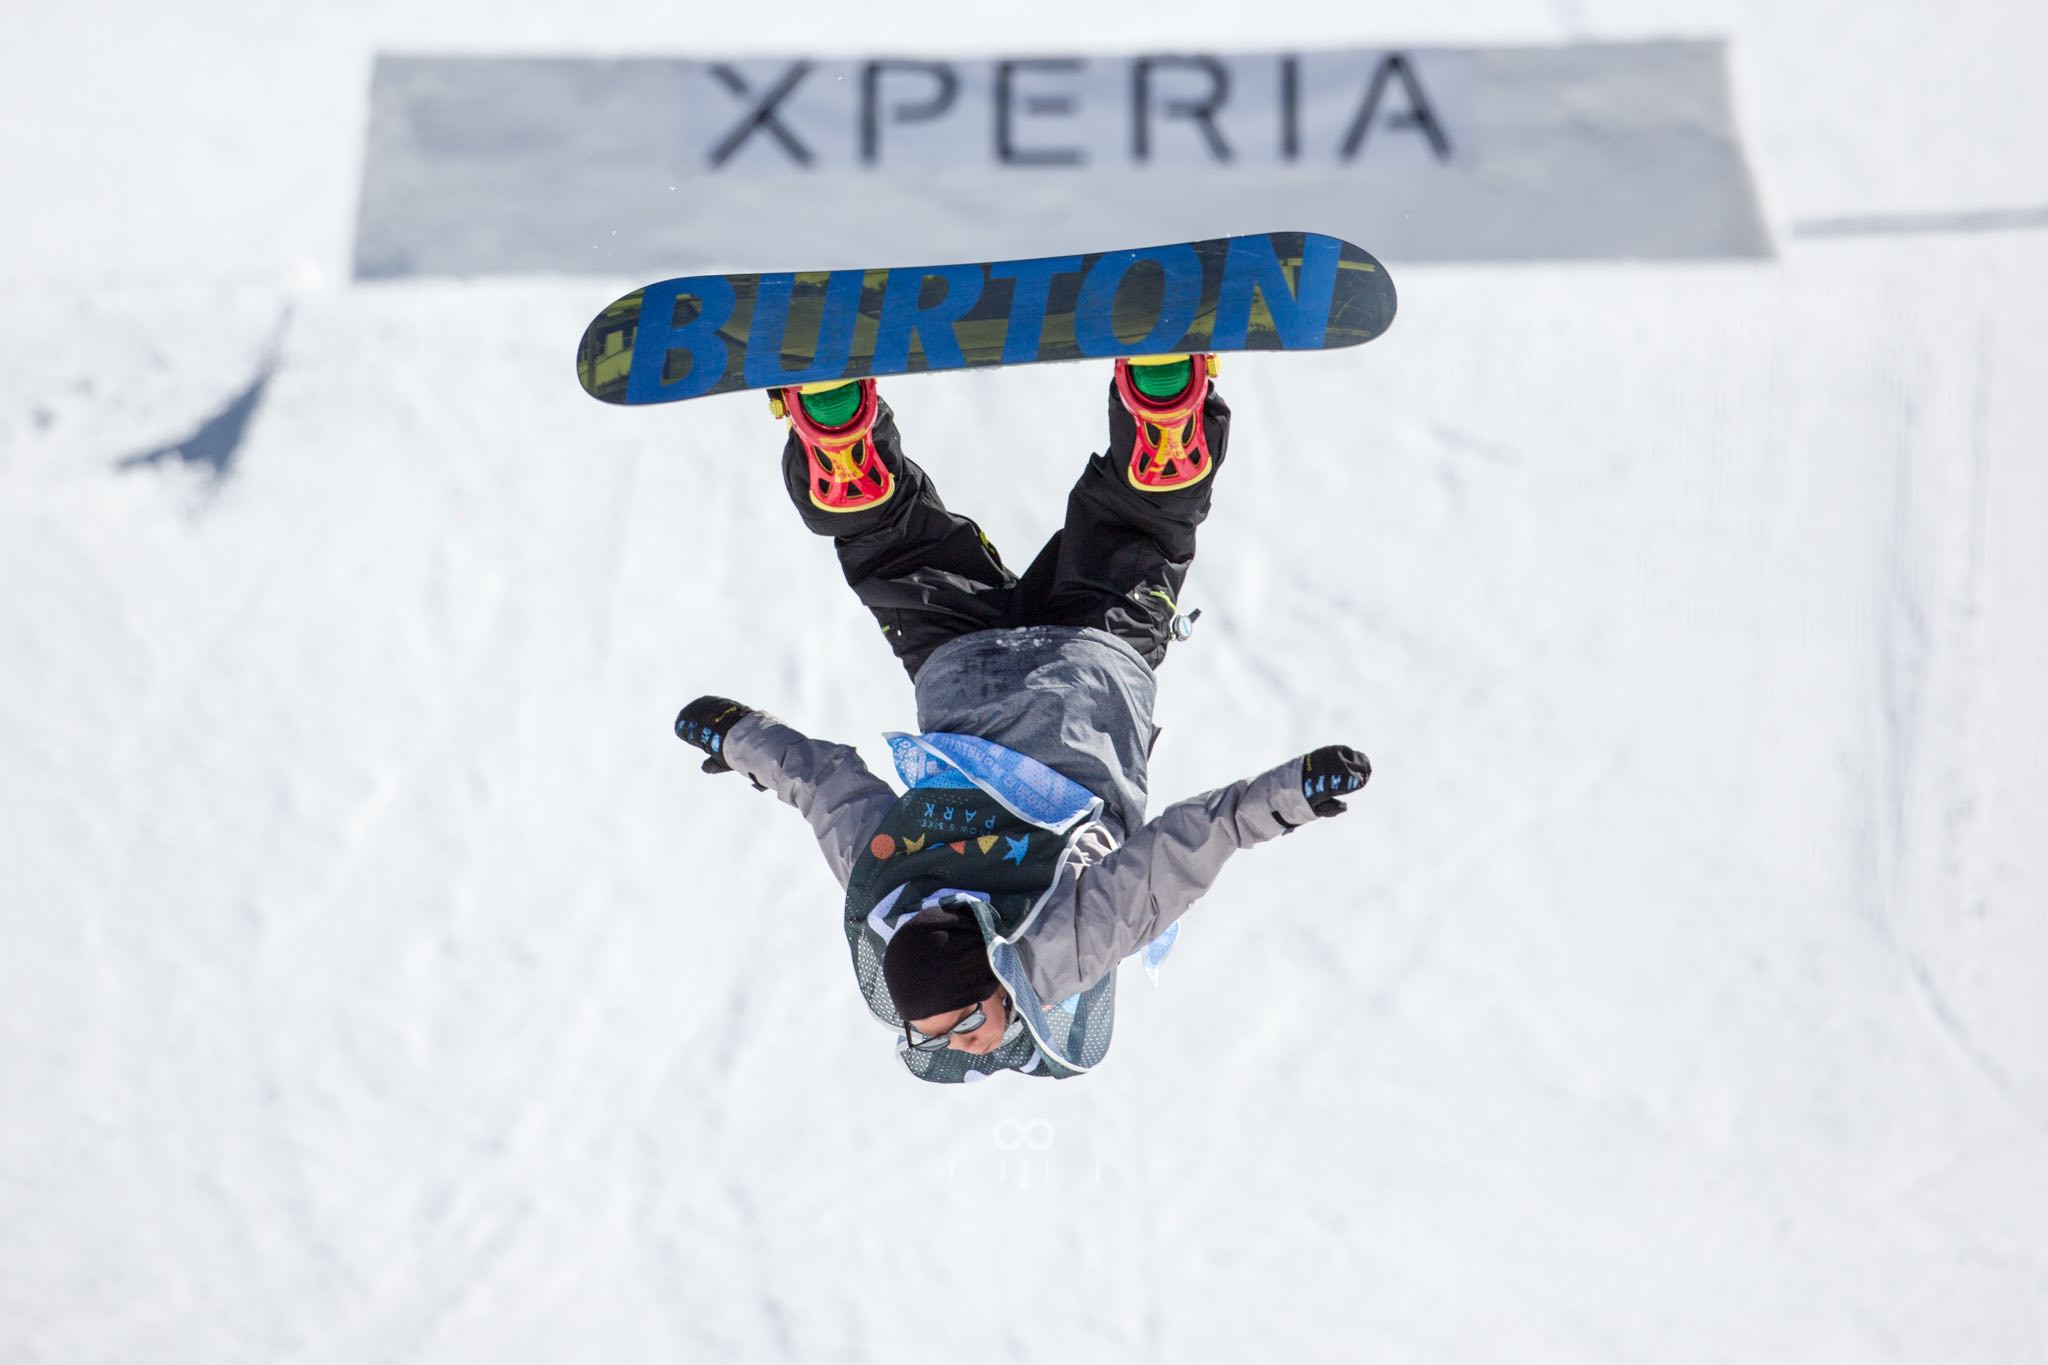 Ethan Terblanche Snowboarding his way to victory in the Junior division at Xperia Winter Whip 2016